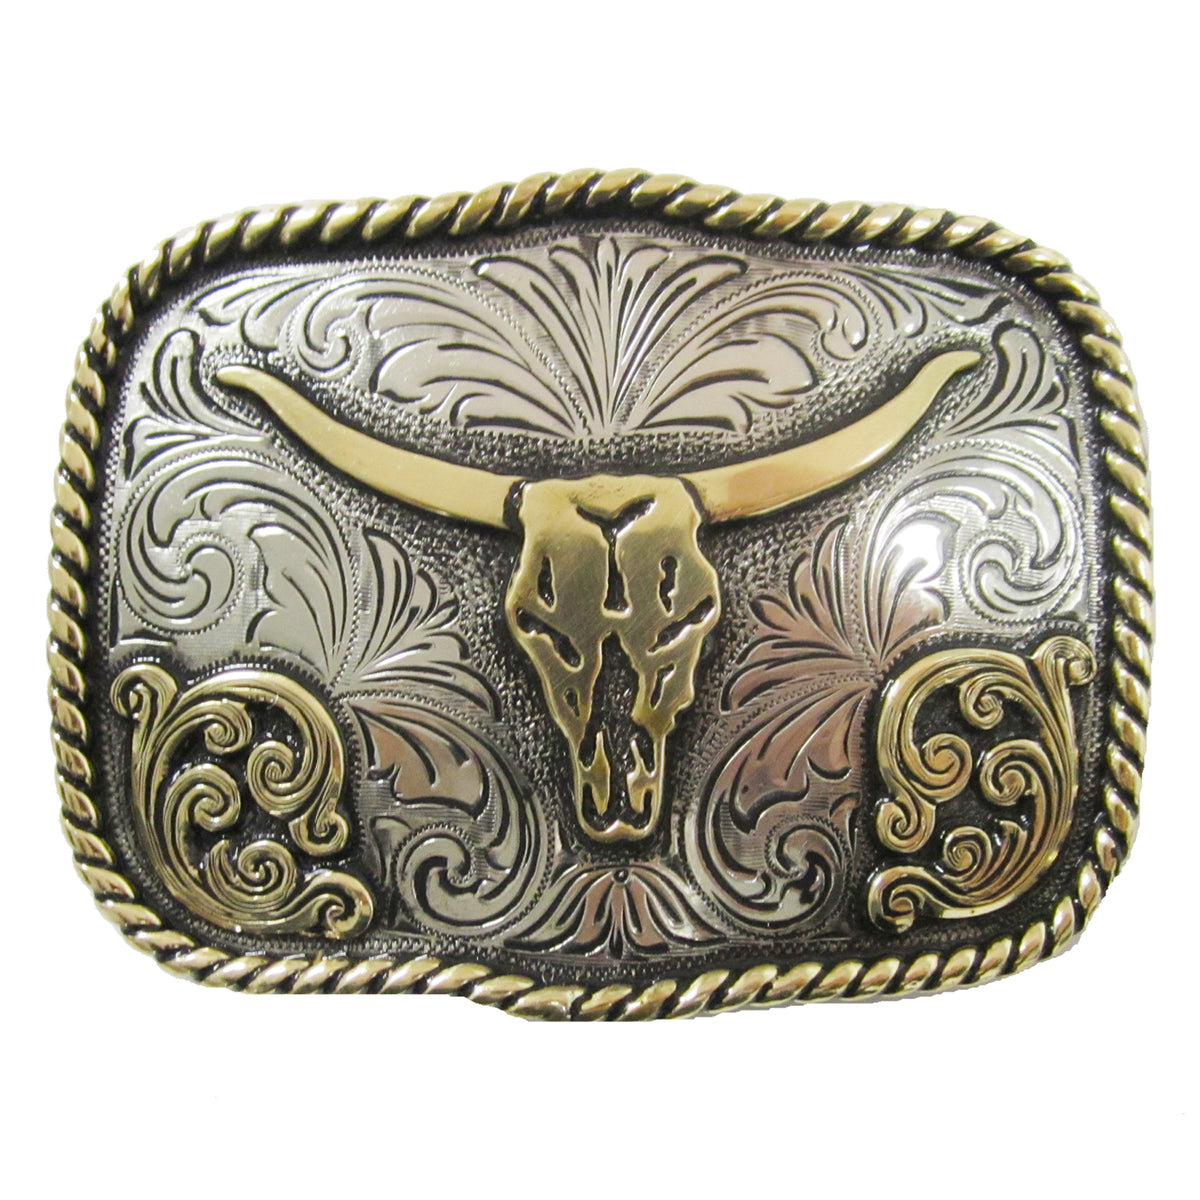 Longhorn Rope Edge Scallop Buckle